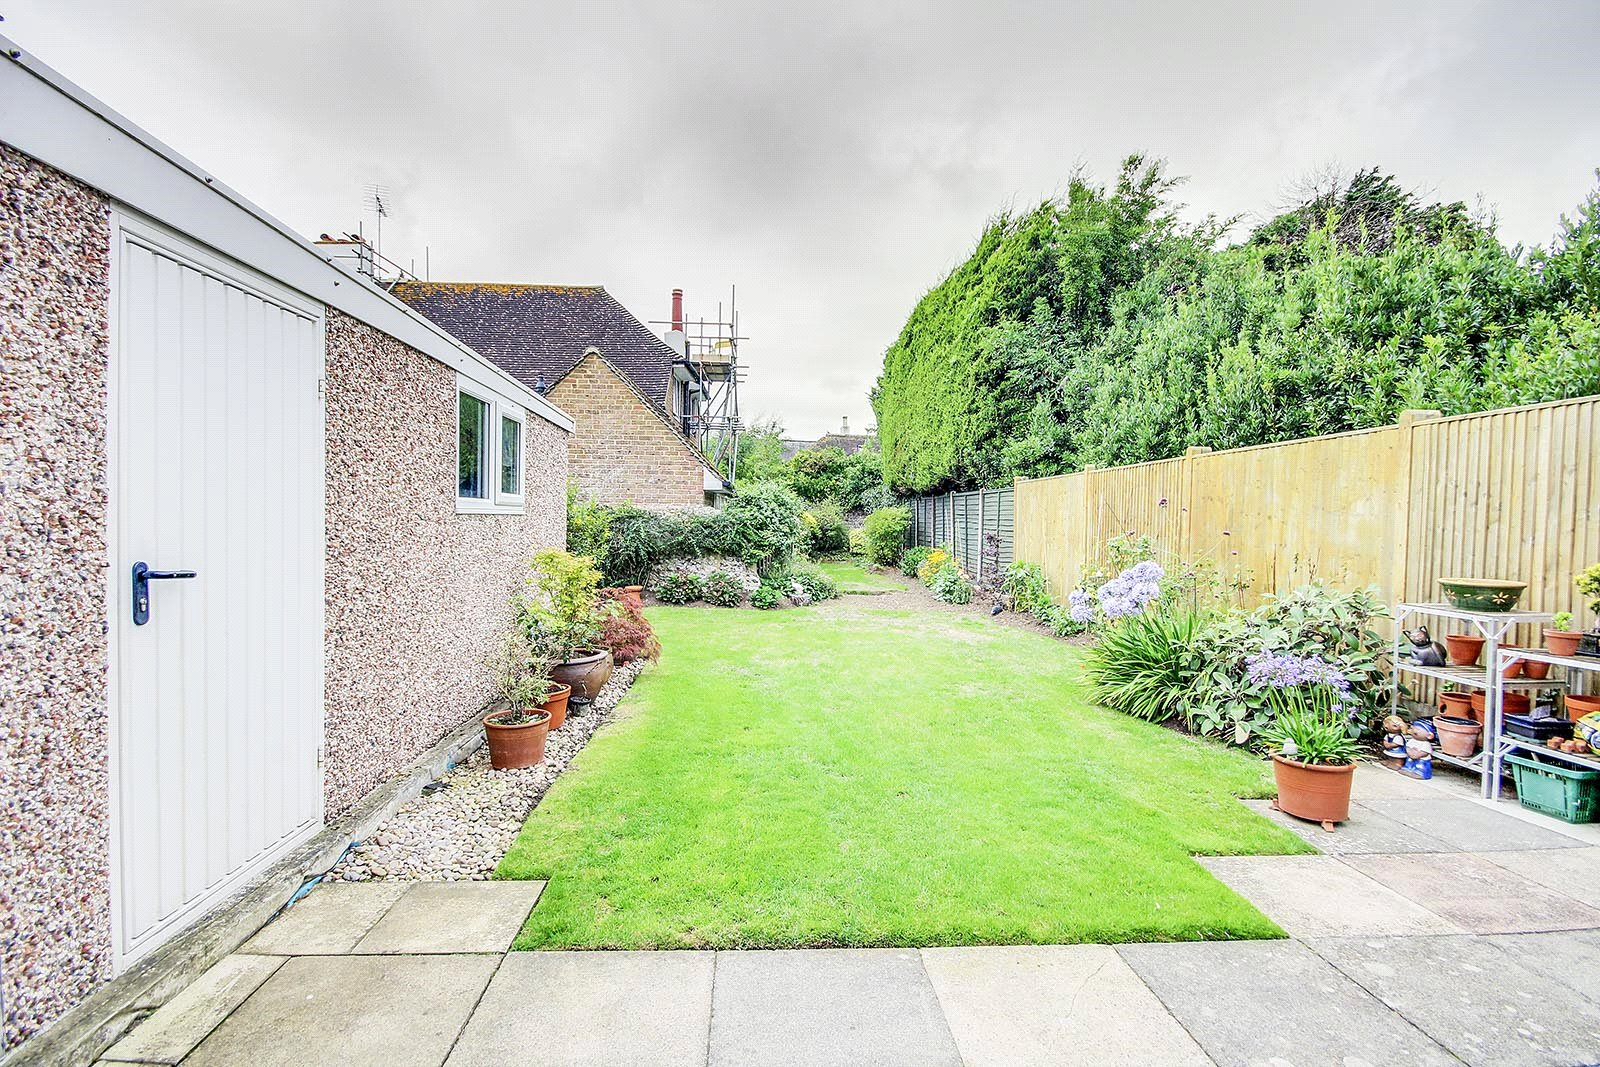 4 bed house for sale in Lansdowne Road, Angmering 2